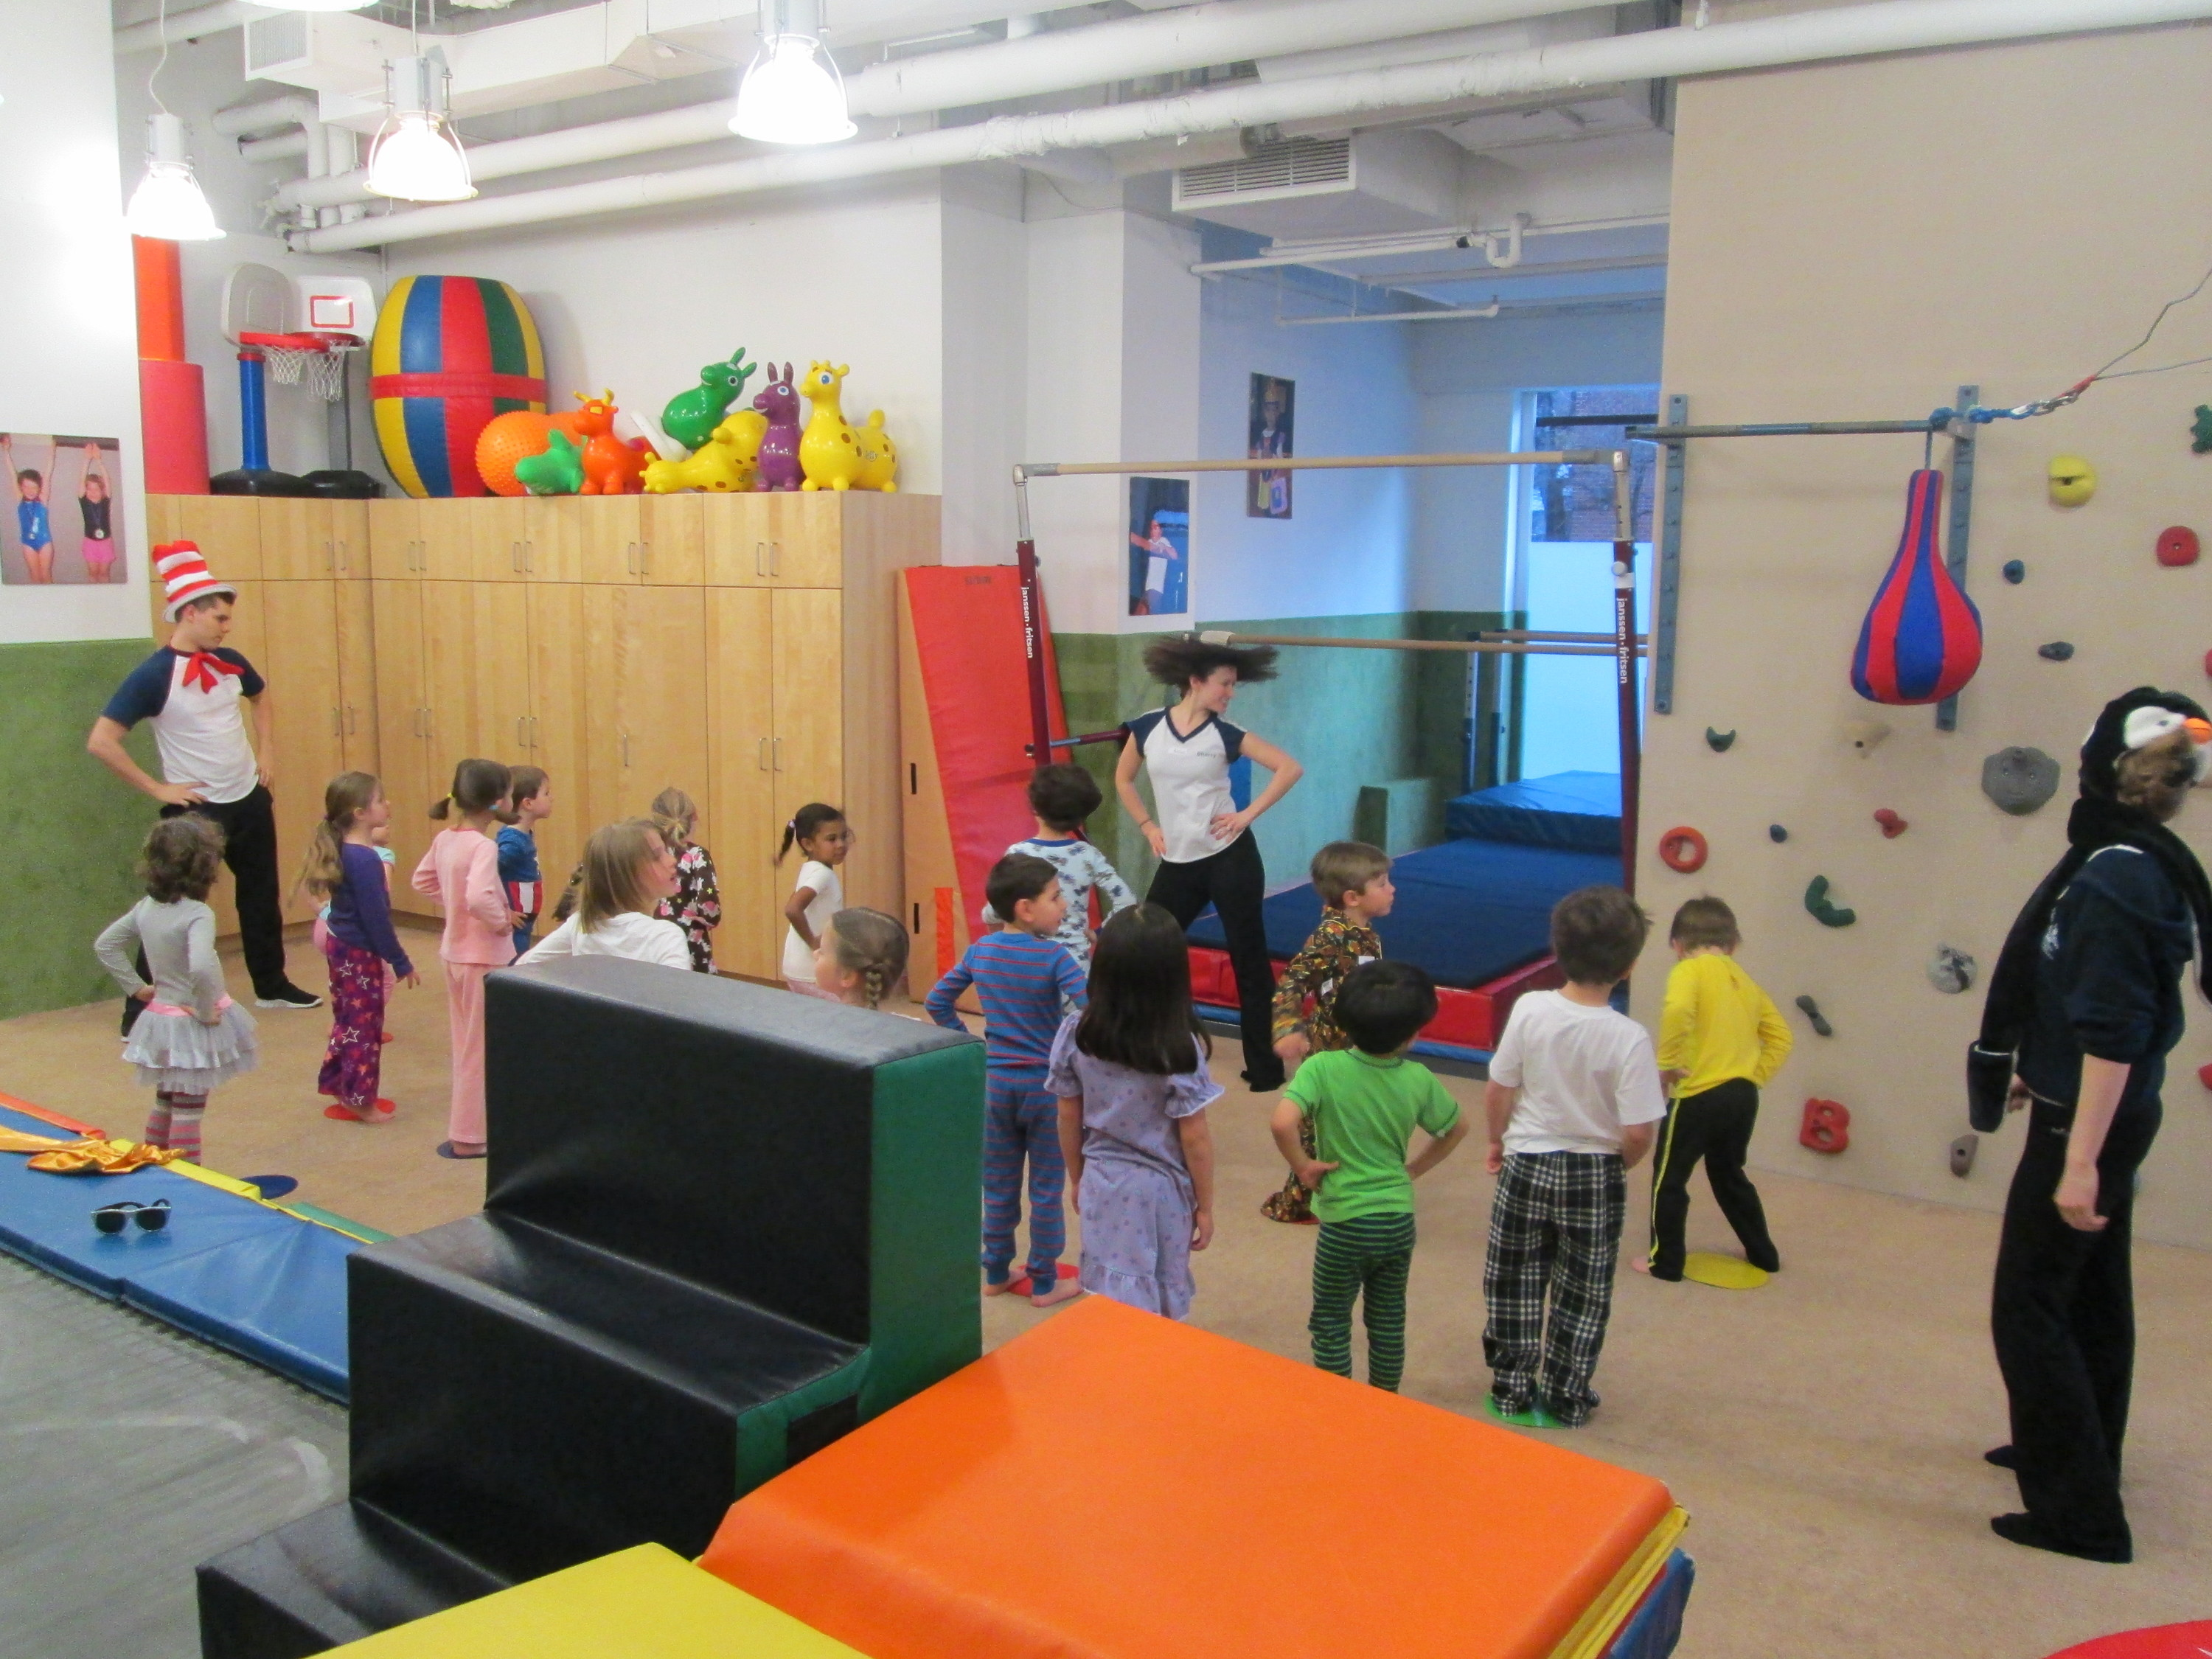 New York Kids Club 68th St (April 9, 6:30–8:30pm)